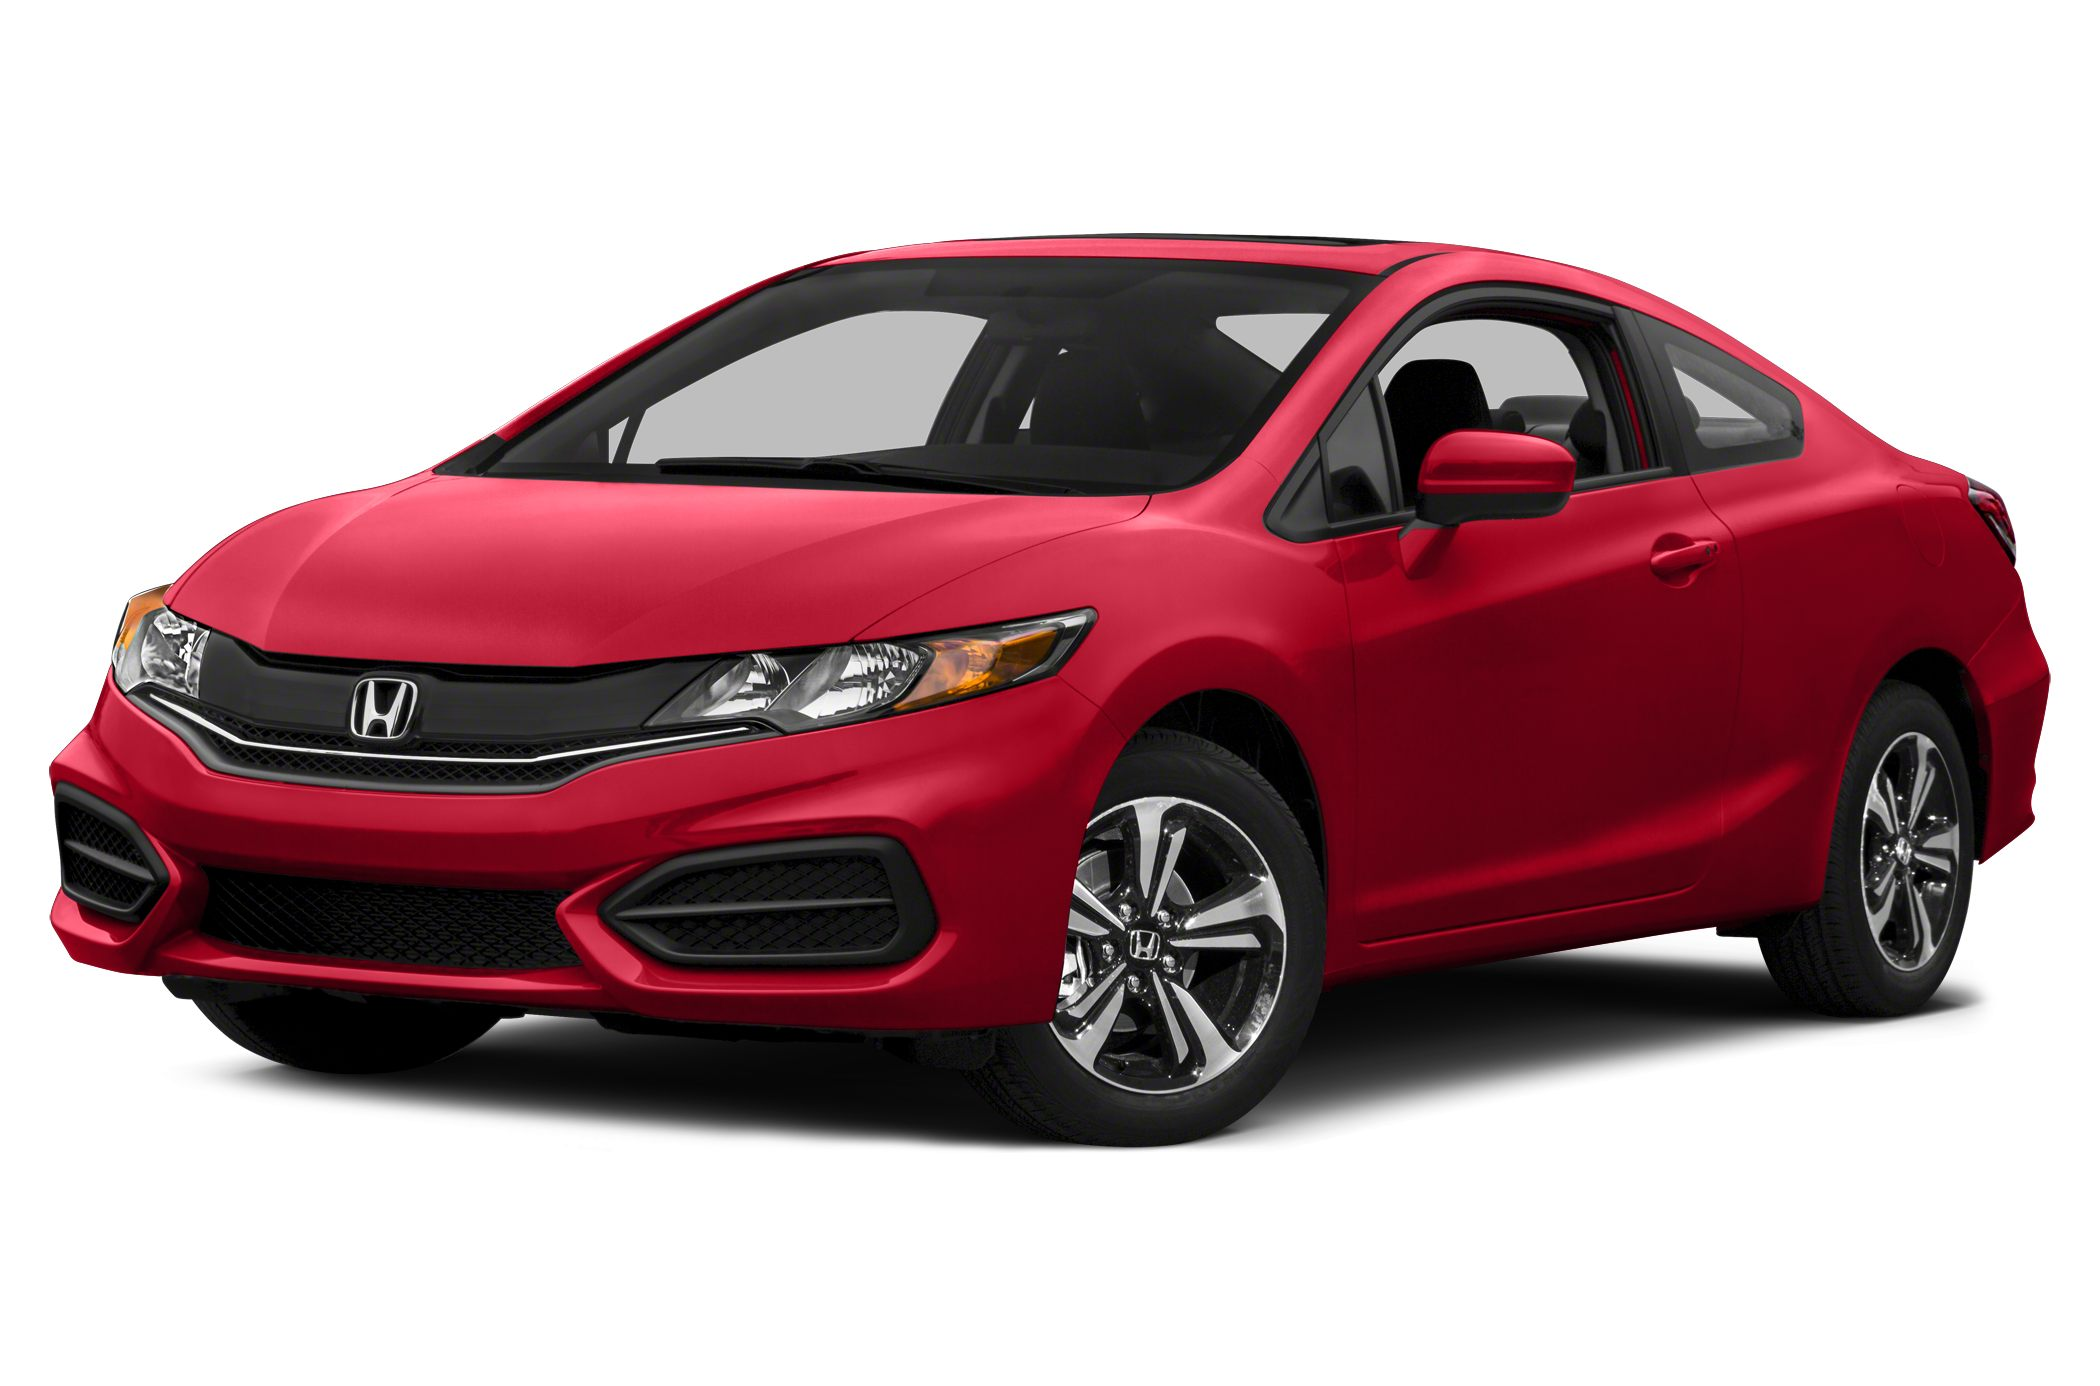 2015 Honda Civic EX Sedan for sale in Sacramento for $22,010 with 0 miles.